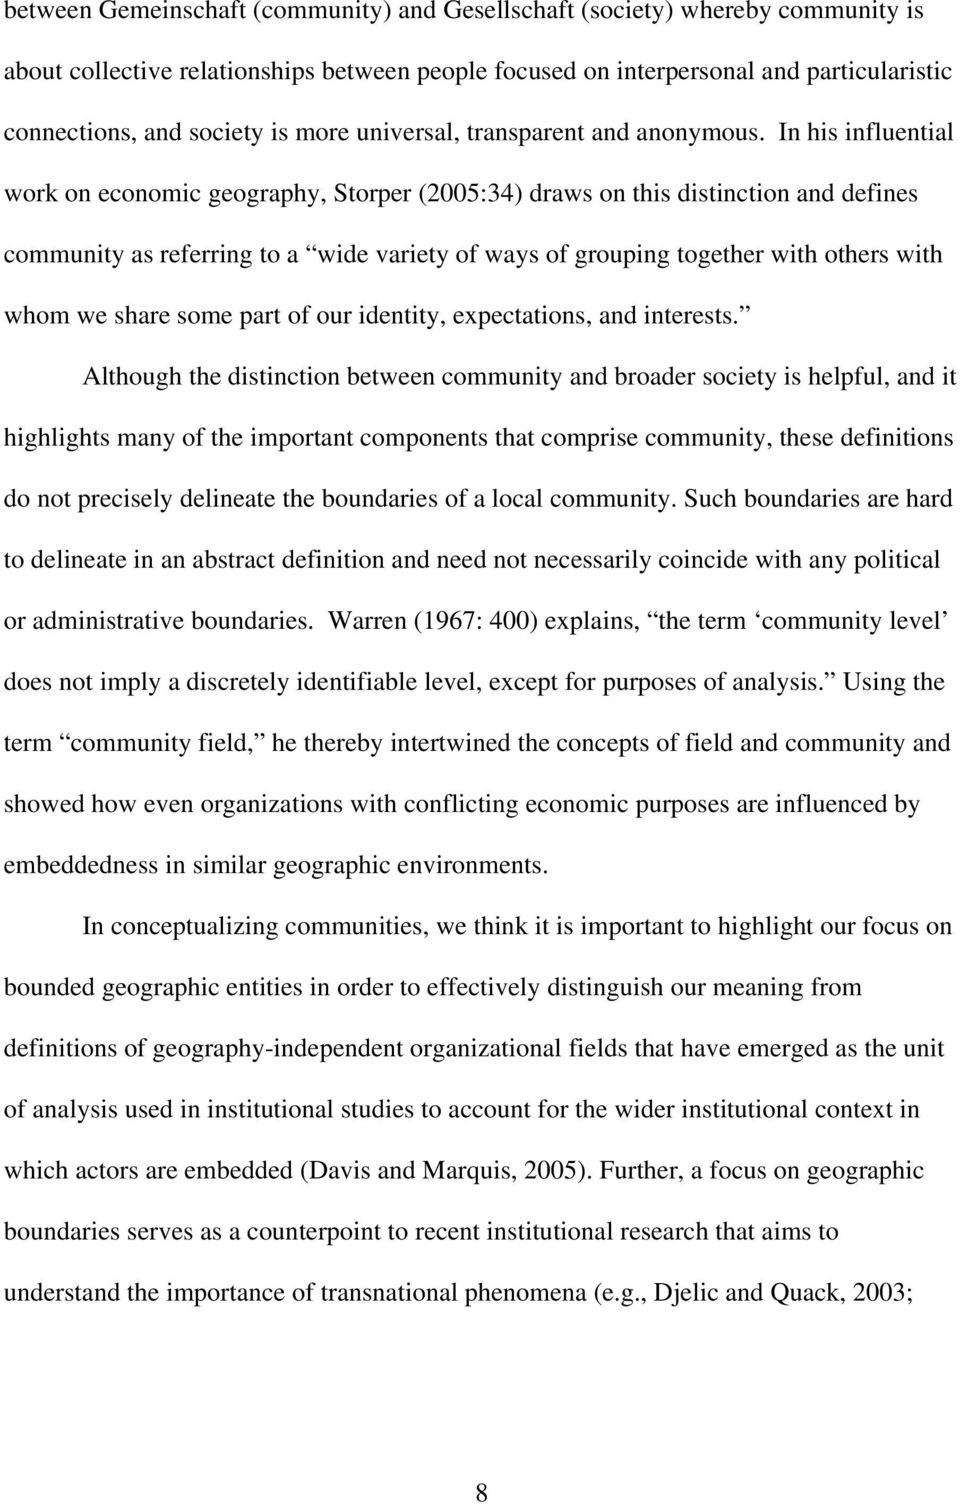 In his influential work on economic geography, Storper (2005:34) draws on this distinction and defines community as referring to a wide variety of ways of grouping together with others with whom we